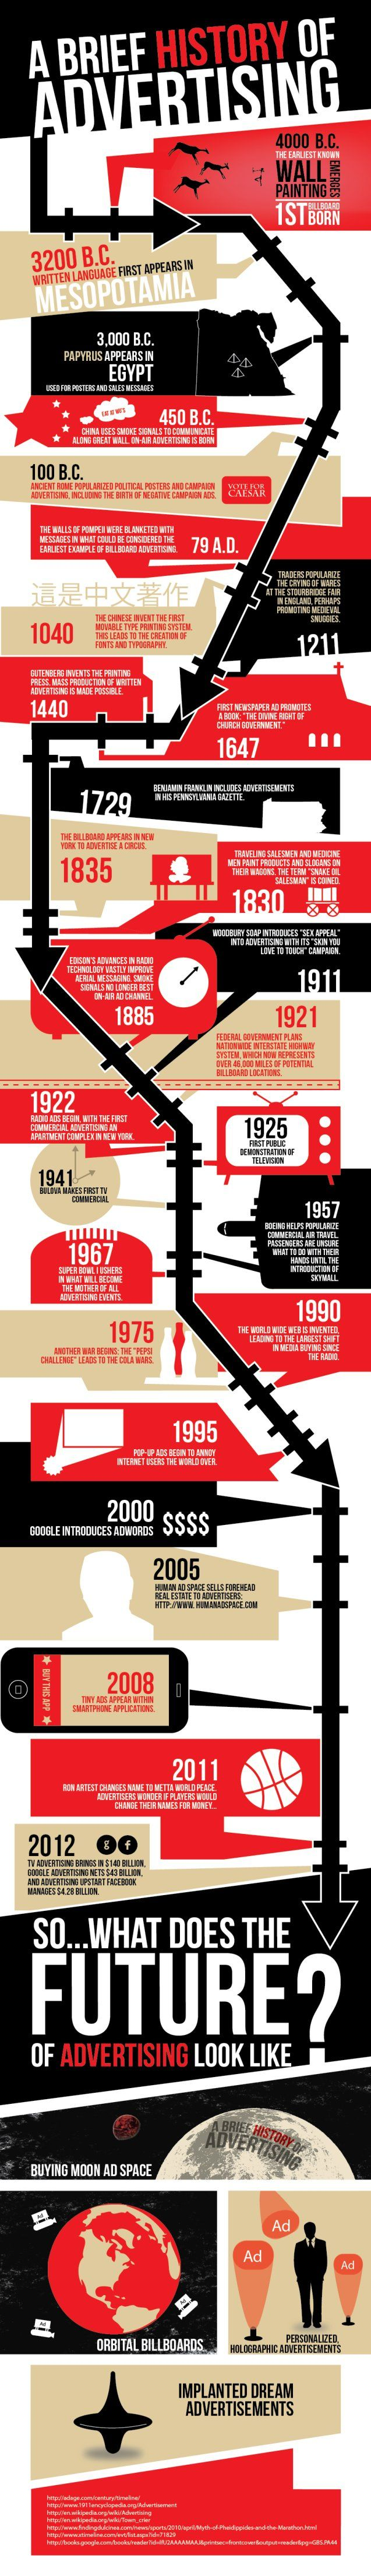 Advertising: A Brief History [Infographic]